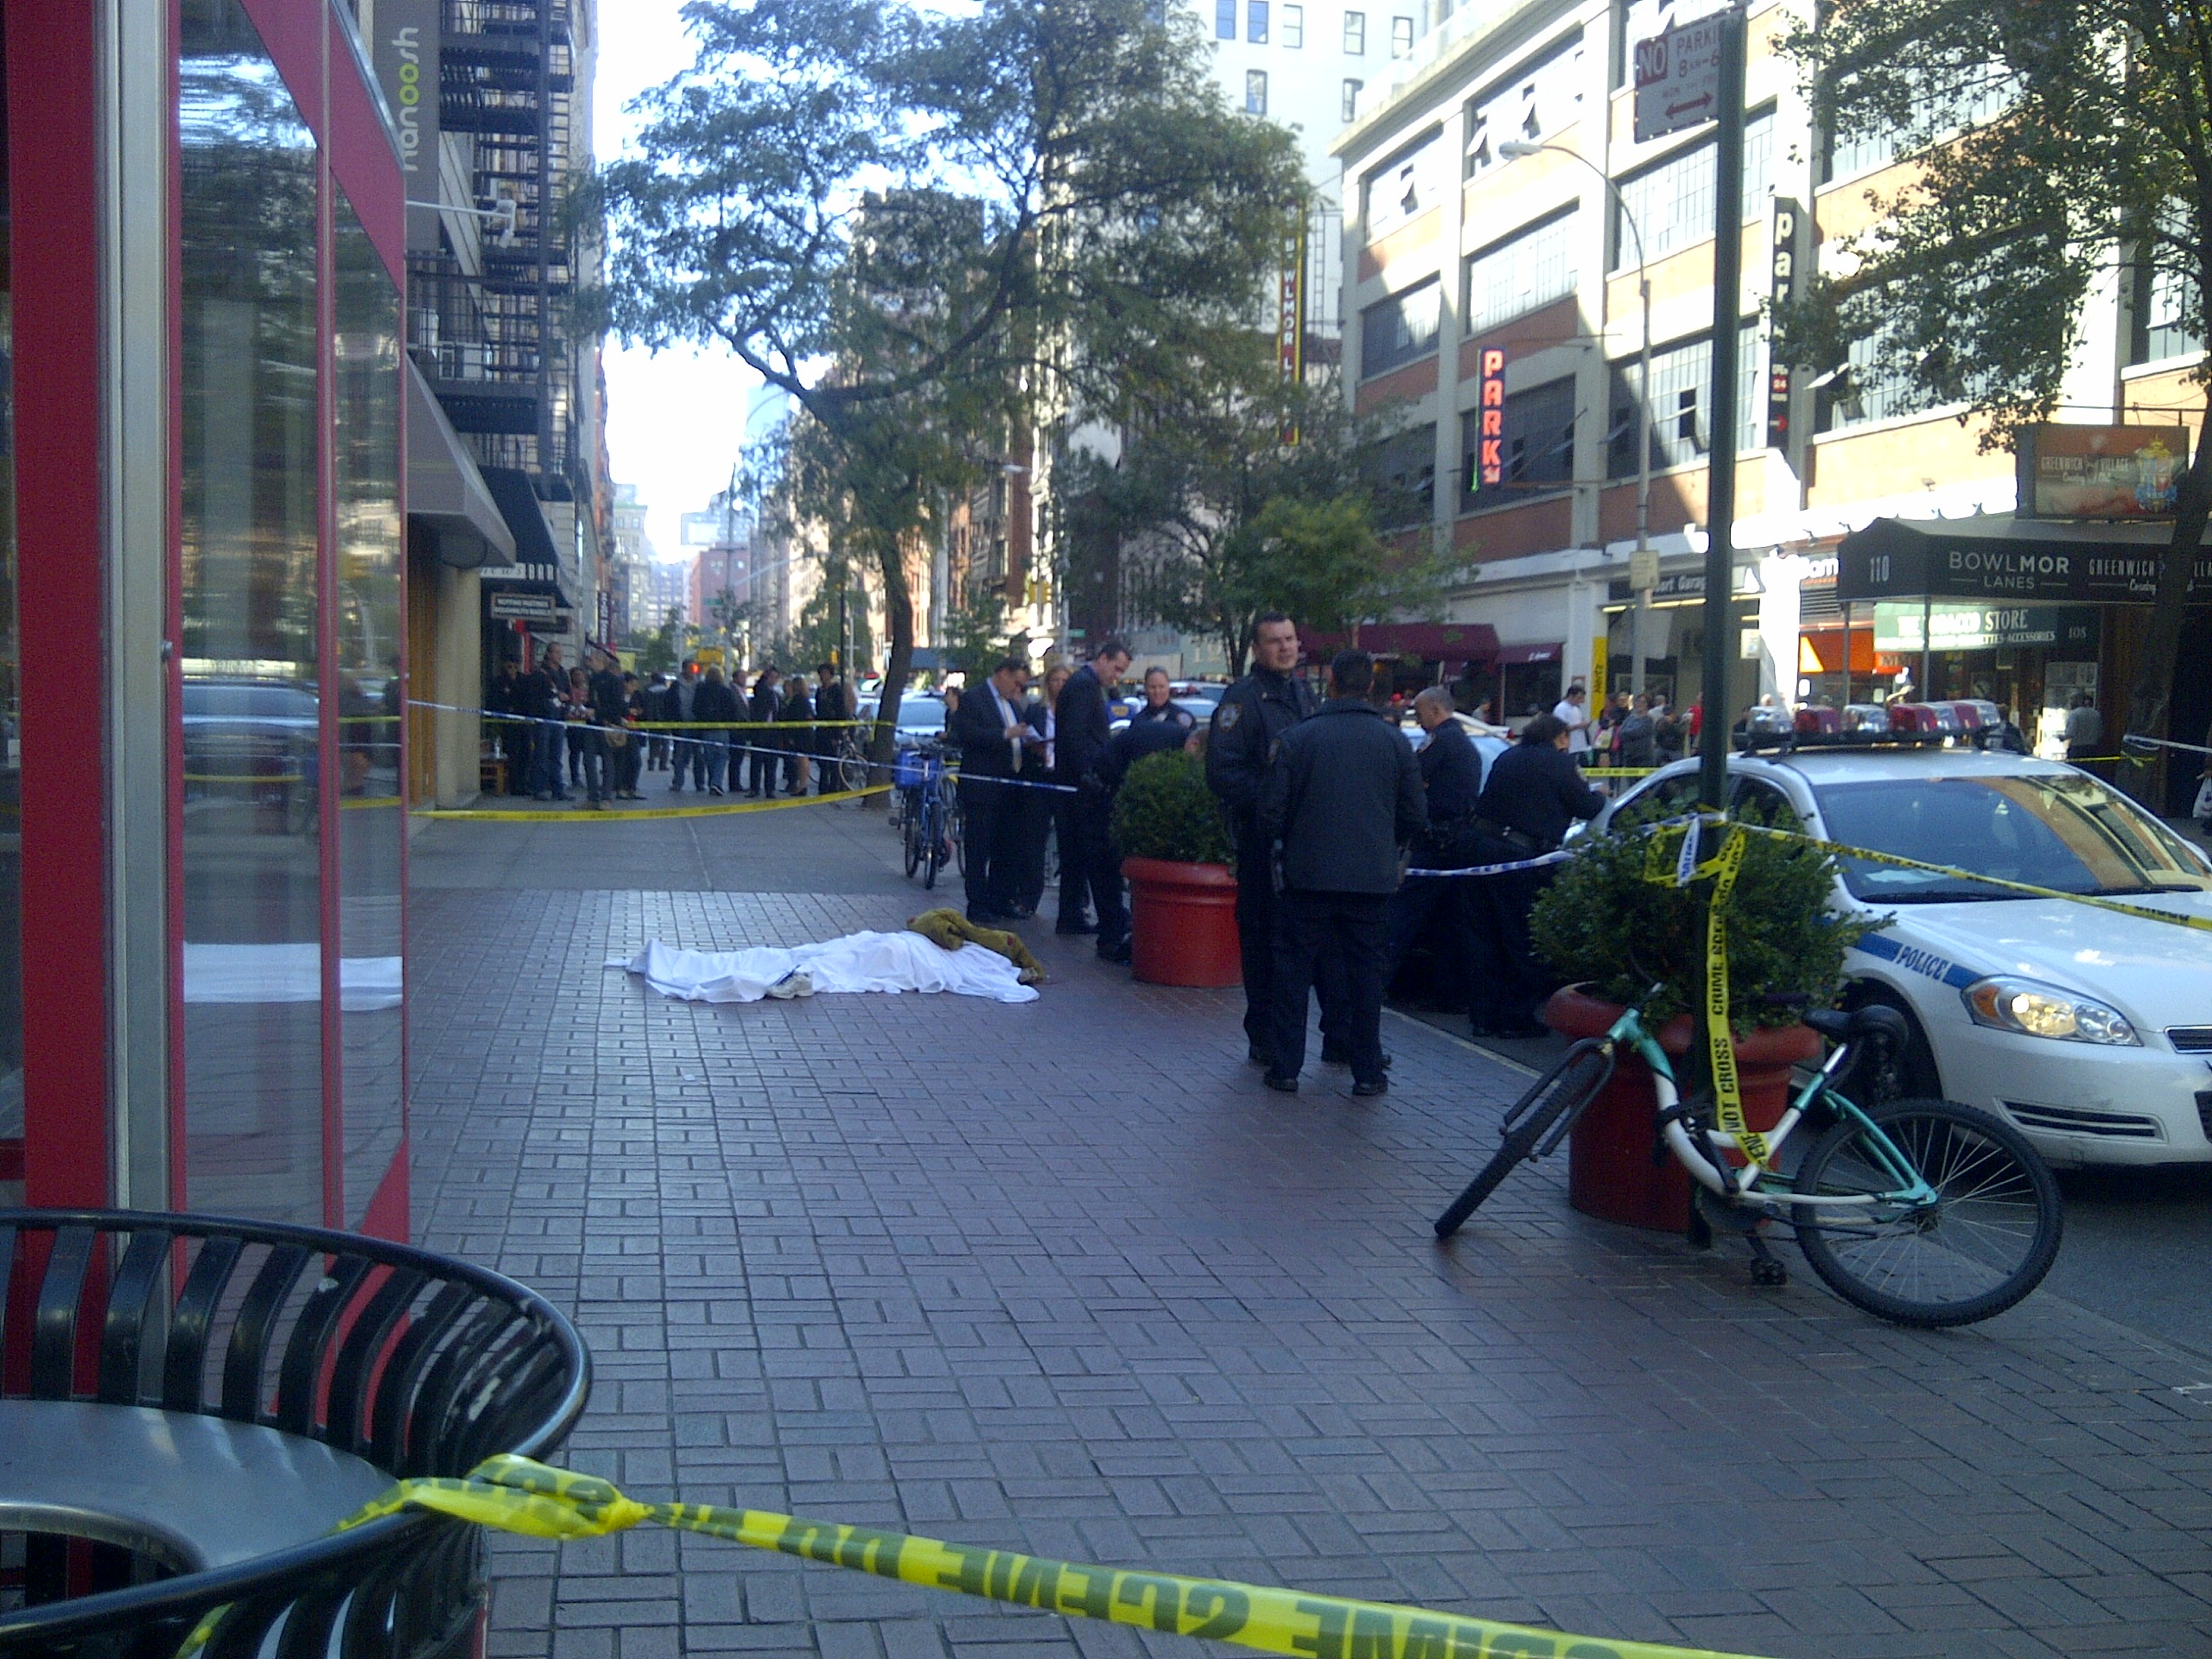 BREAKING: Unidentified person fell from building on University Place